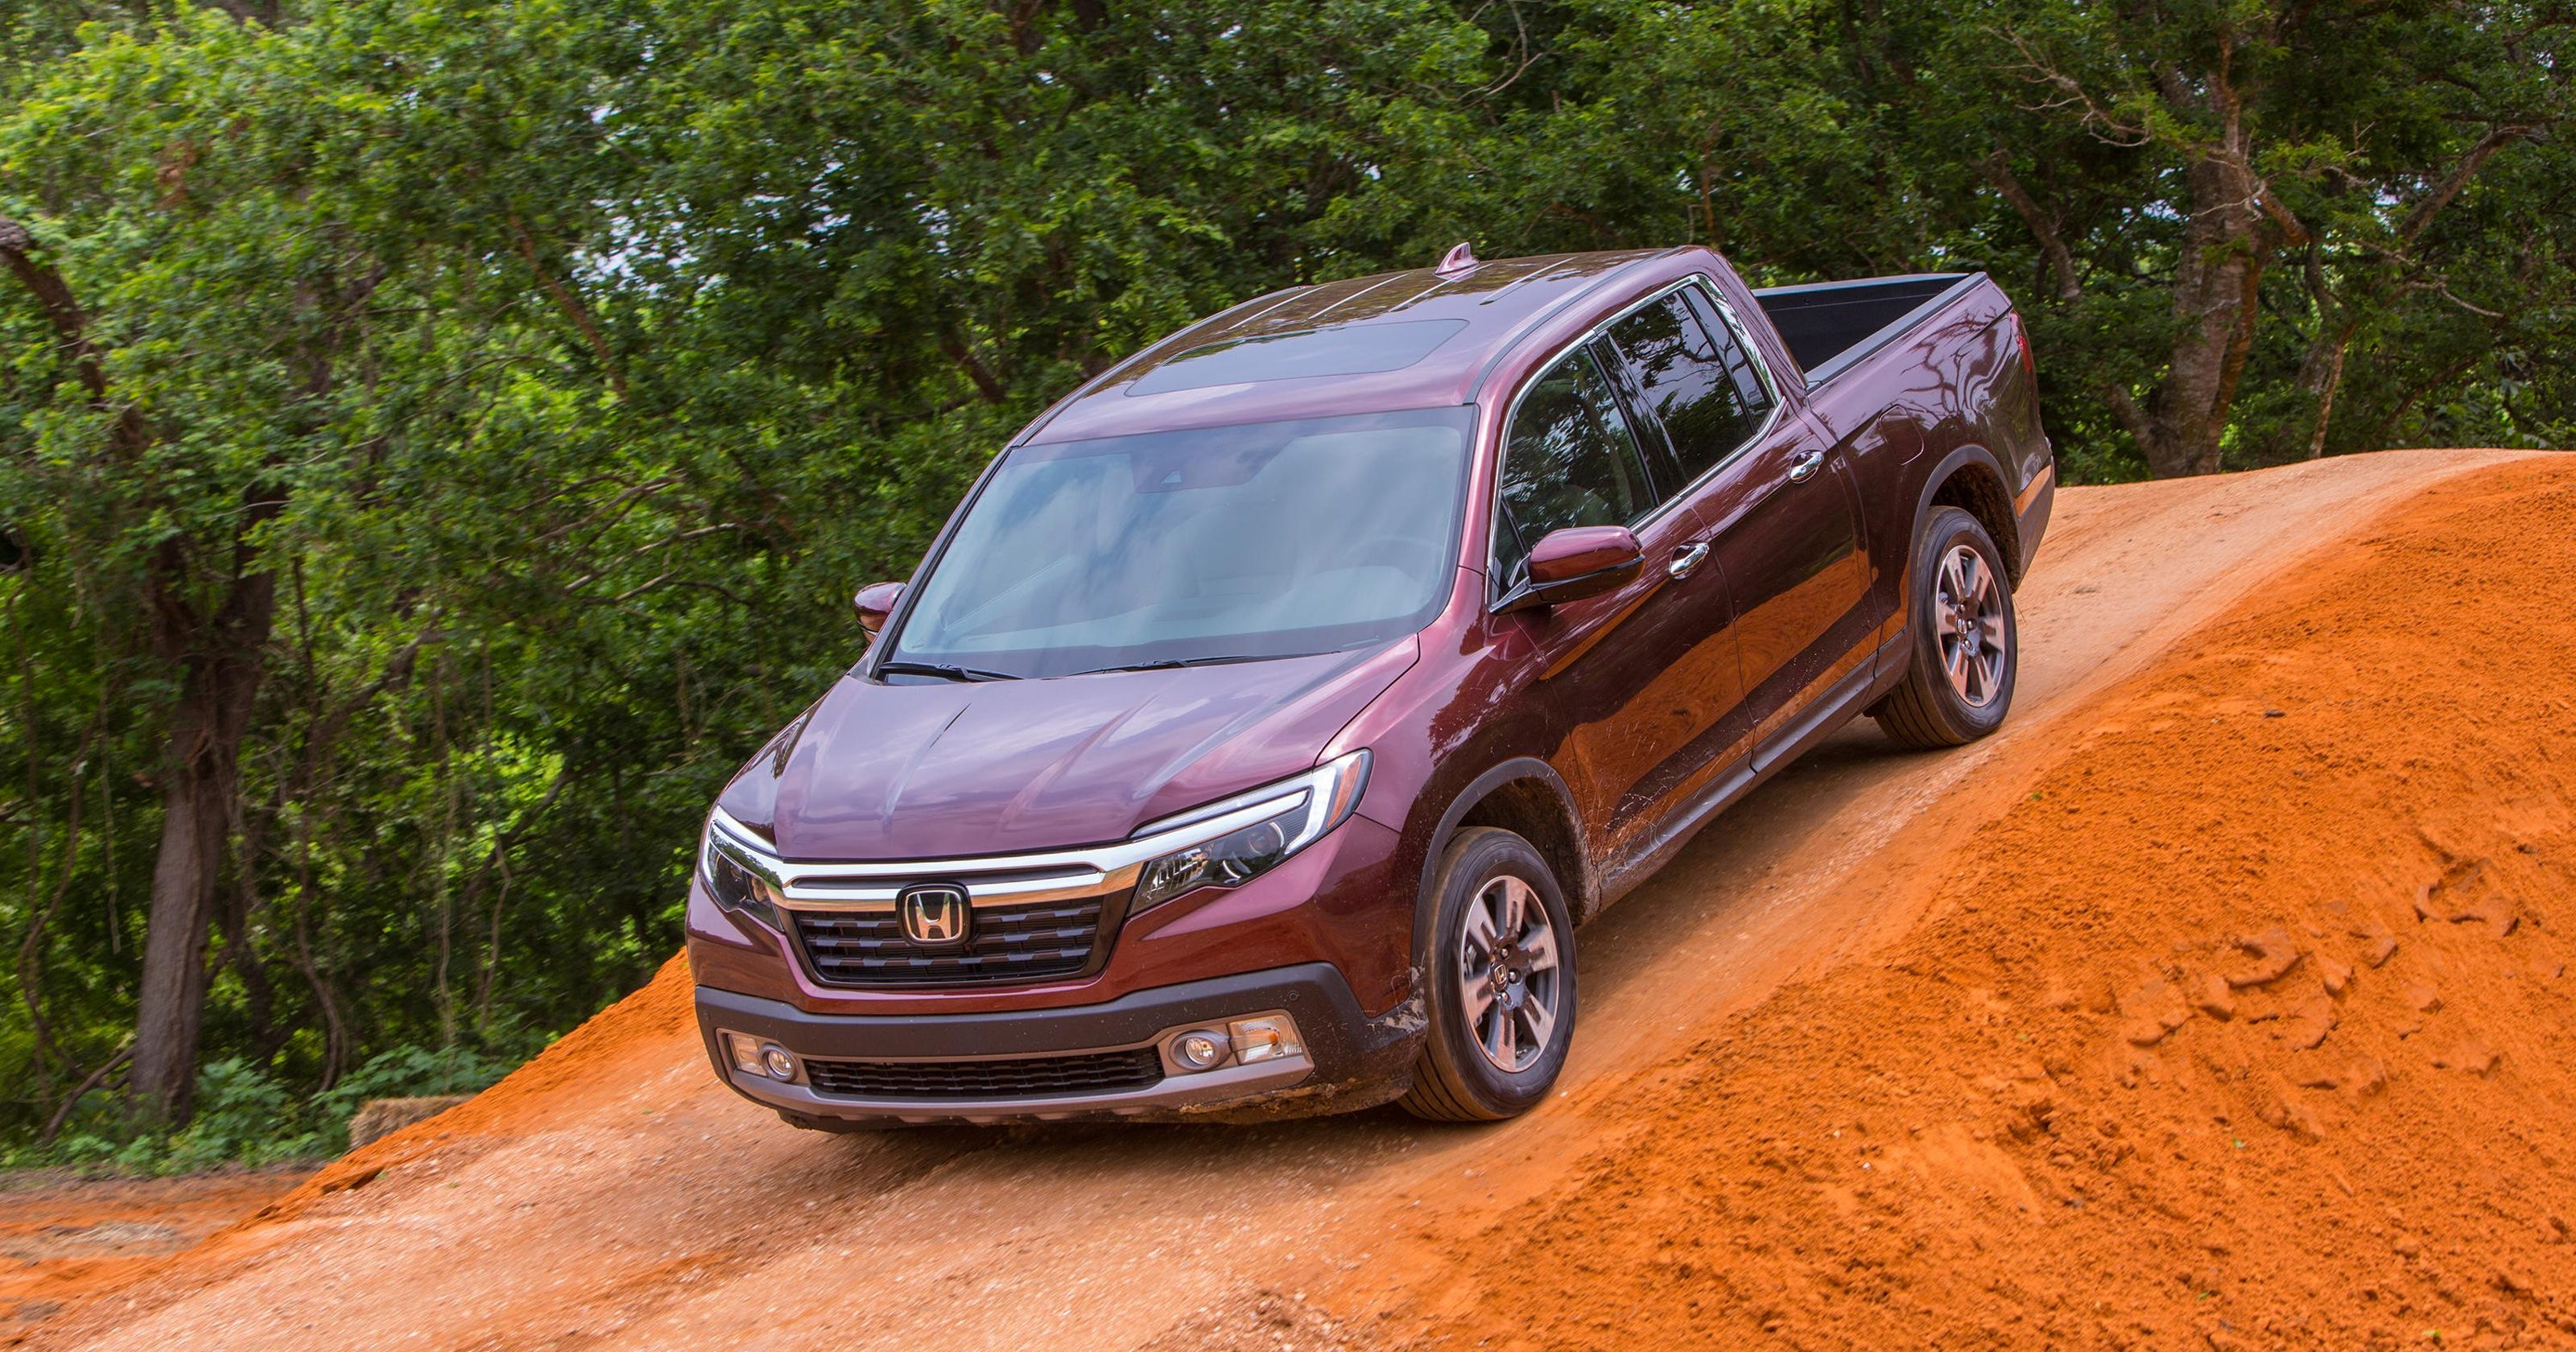 Payne Honda Ridgeline The Crossover Pickup Boat Towing With